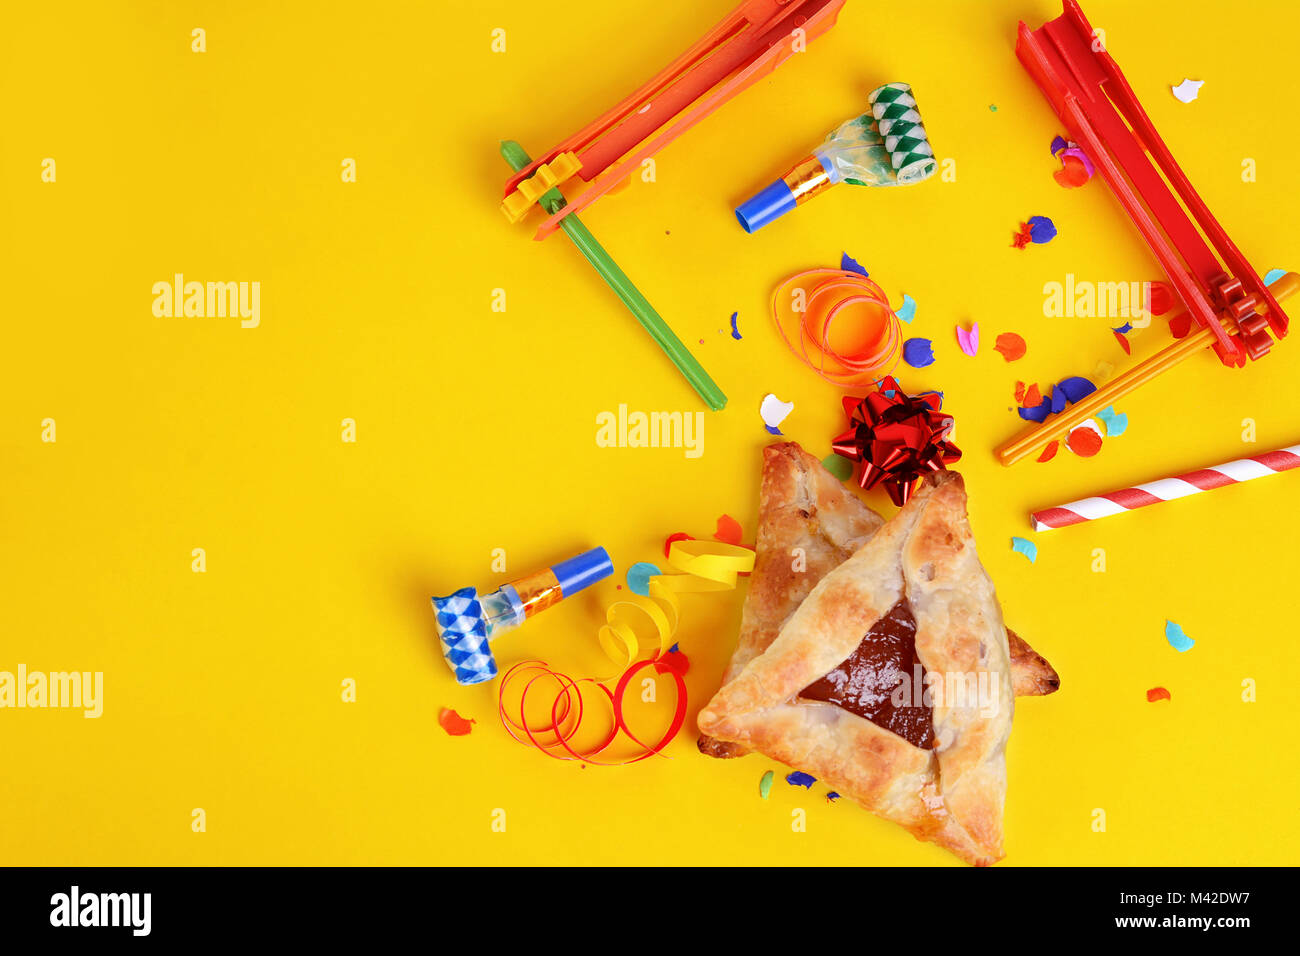 Purim background with party costume and hamantaschen cookies. - Stock Image